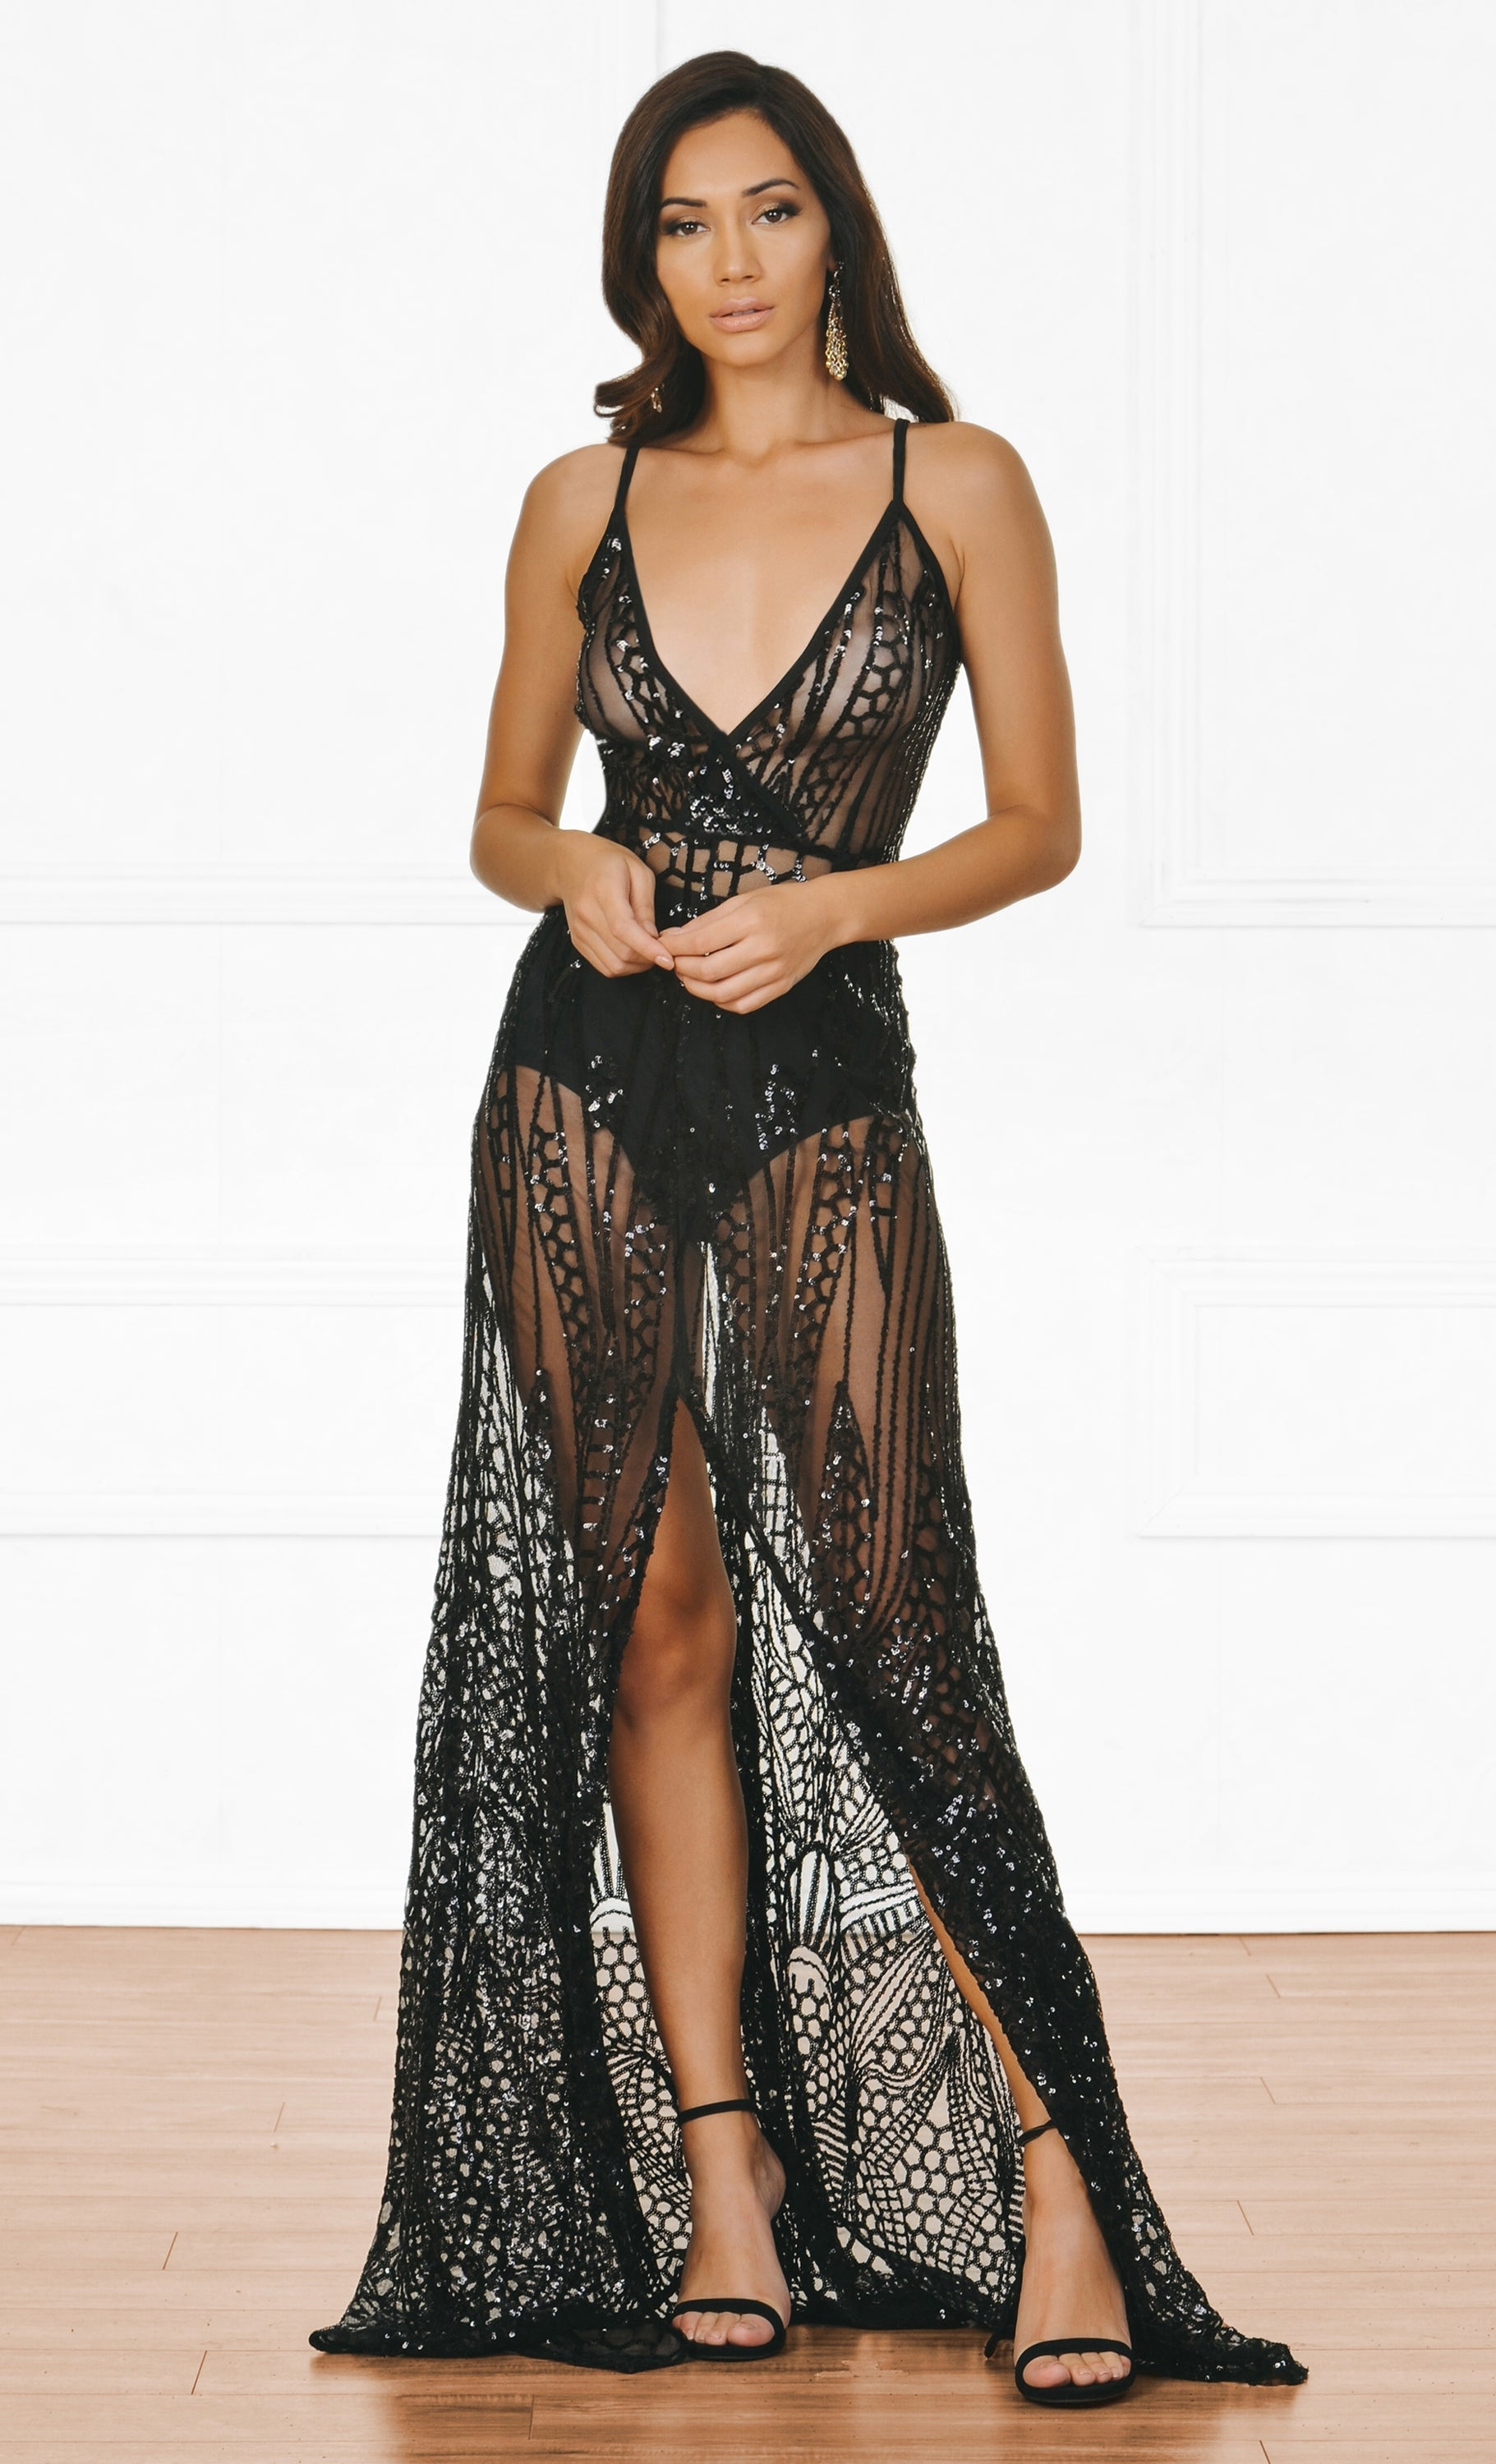 Indie XO Cause A Scandal Black Sheer Glitter Geometric Sleeveless Spaghetti Strap Deep V Neck Double Split Maxi Dress